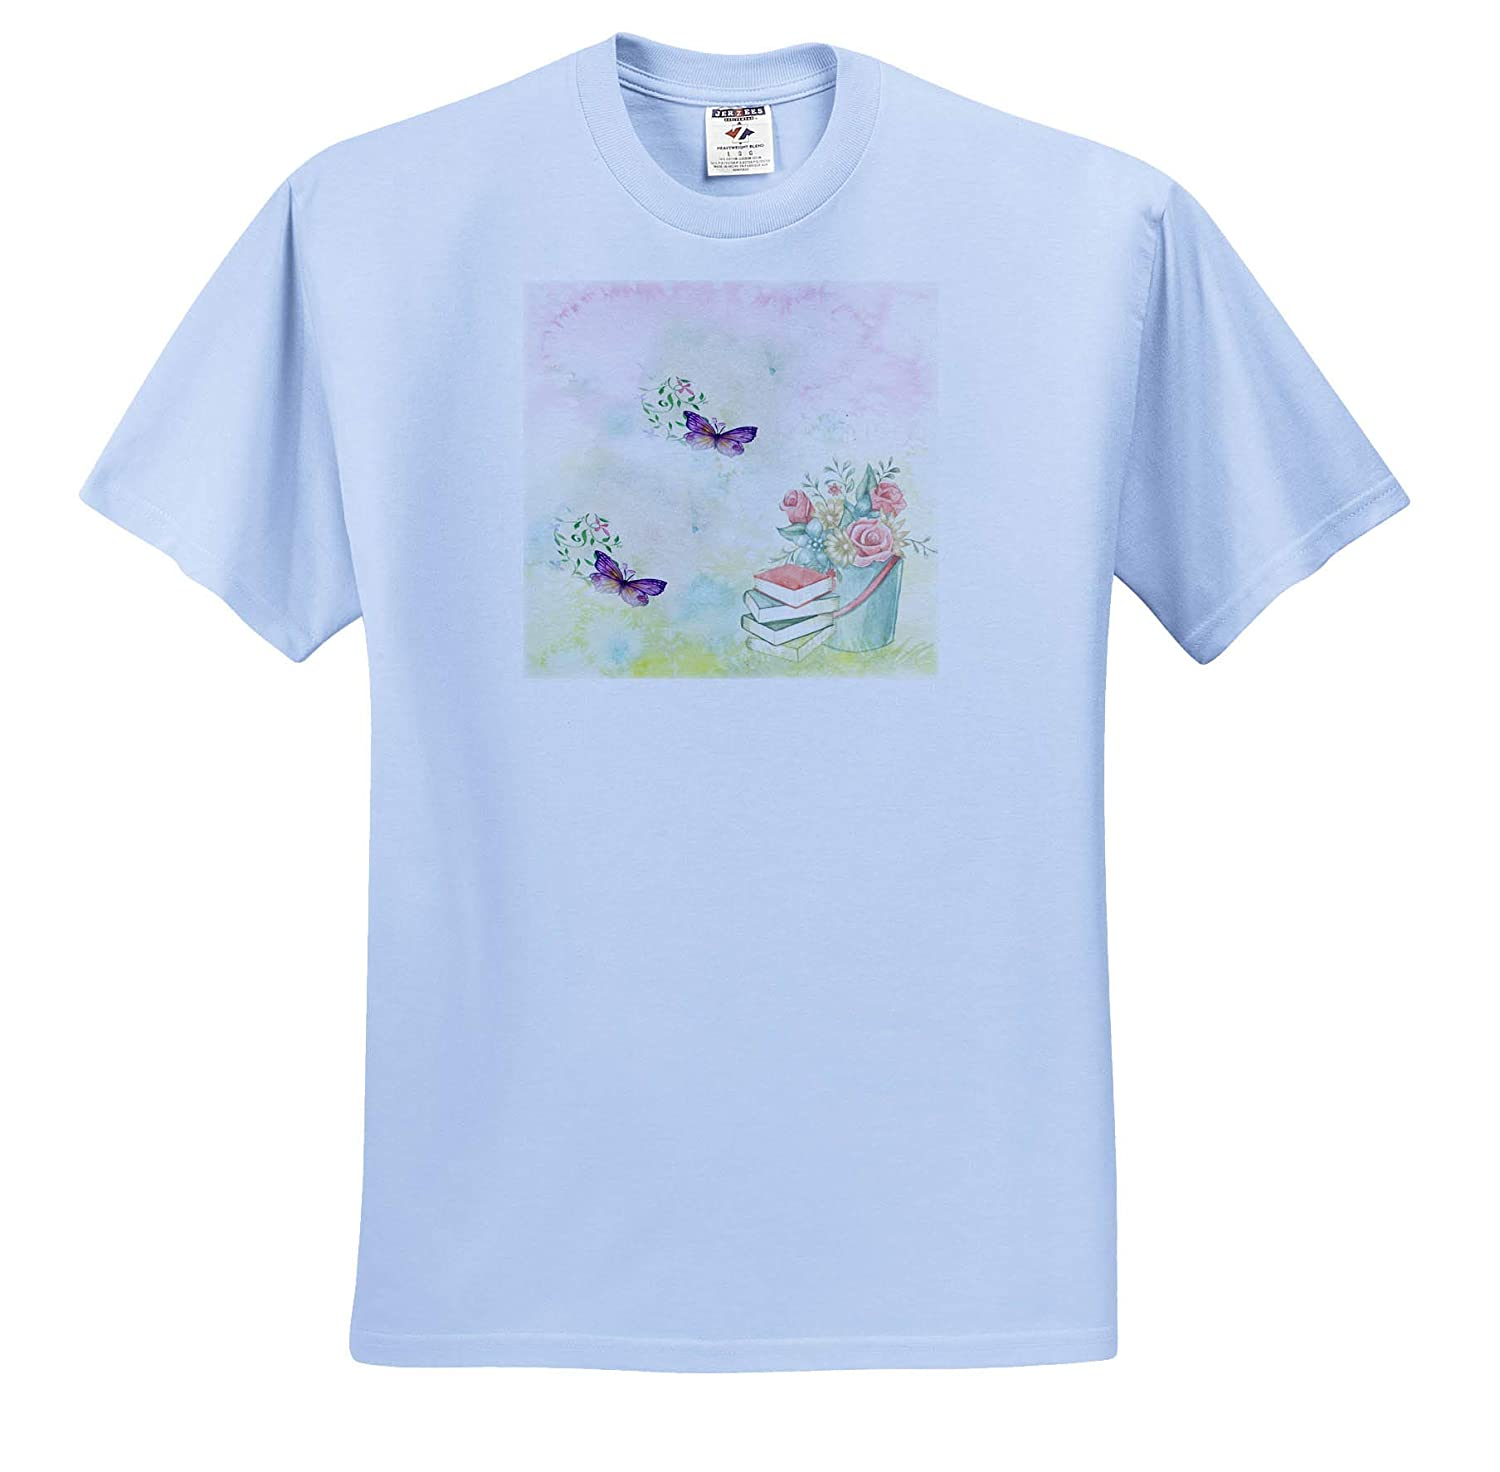 T-Shirts Image of Purple Butterflies Float Near Pail of Roses and Books Watercolor Art 3dRose Lens Art by Florene